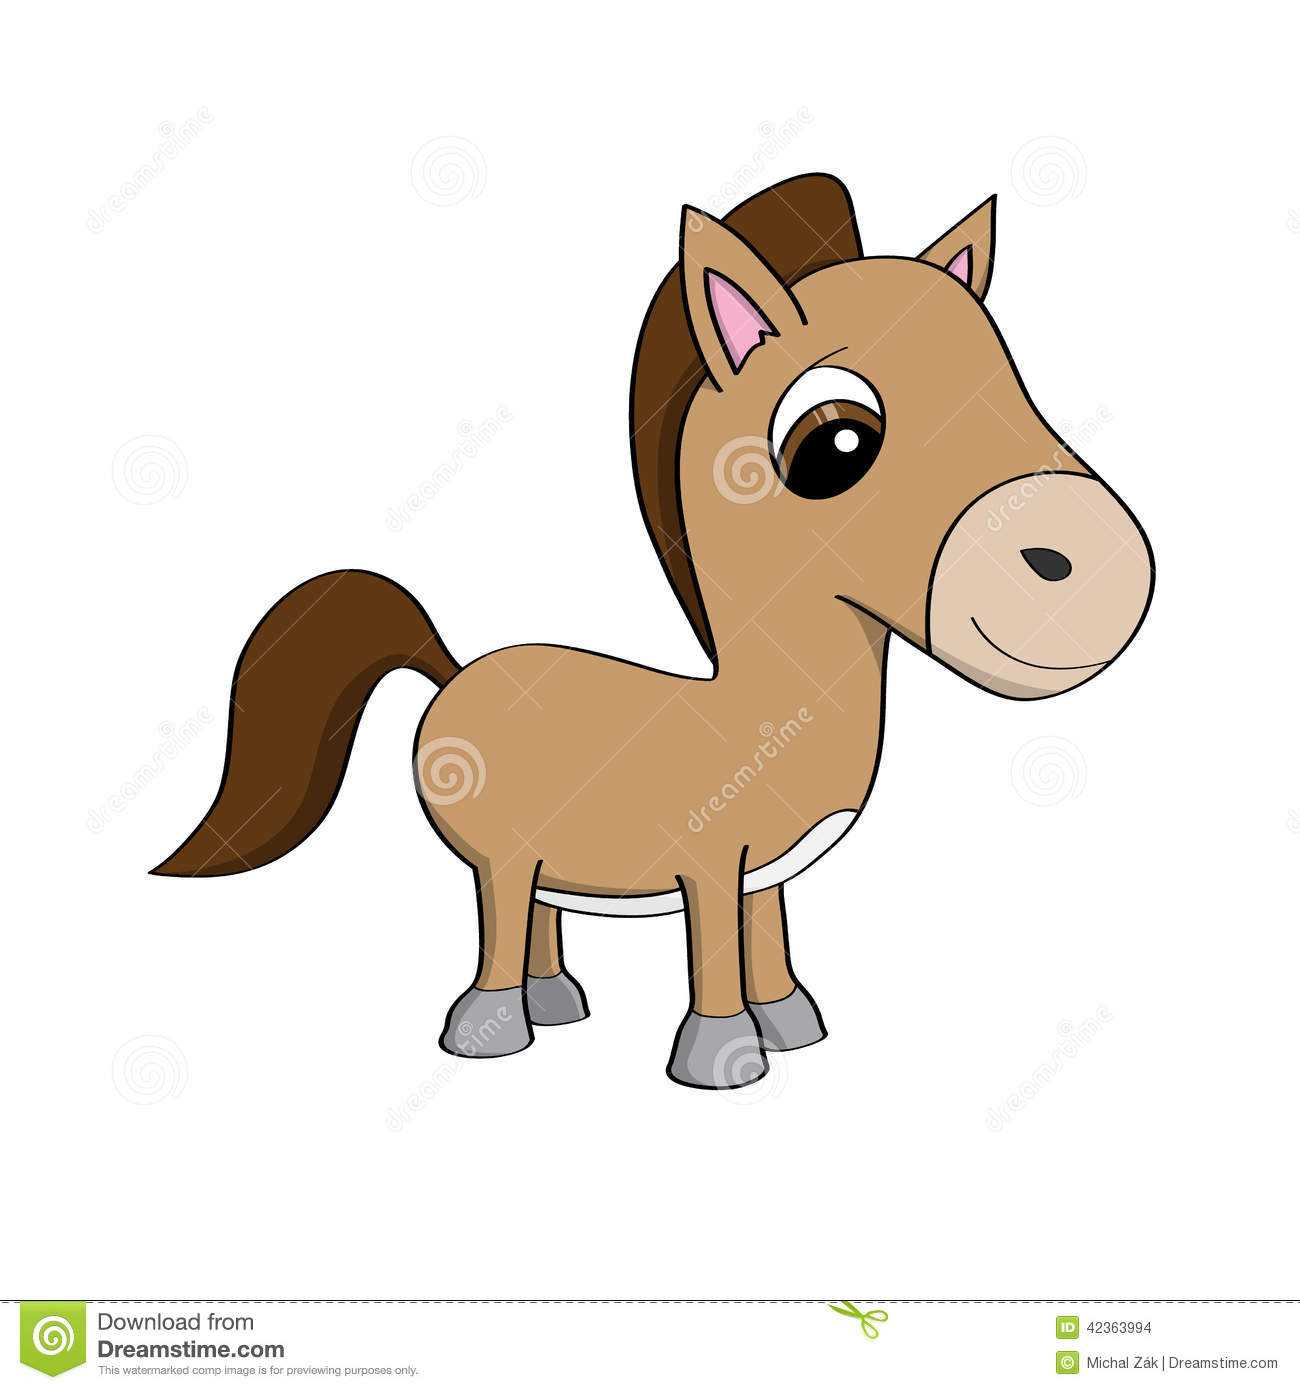 Clipart 409358 additionally Stock Illustration Cartoon Illustration Cute Little Horse Brown Pony Big Brown Eyes Image42363994 moreover Legacy Of Love Wedding Cake Topper Figurine likewise Clipart Simple Flower 2 moreover Purple And Gold Fleur De Lis Car Mag. on brown fleur de lis